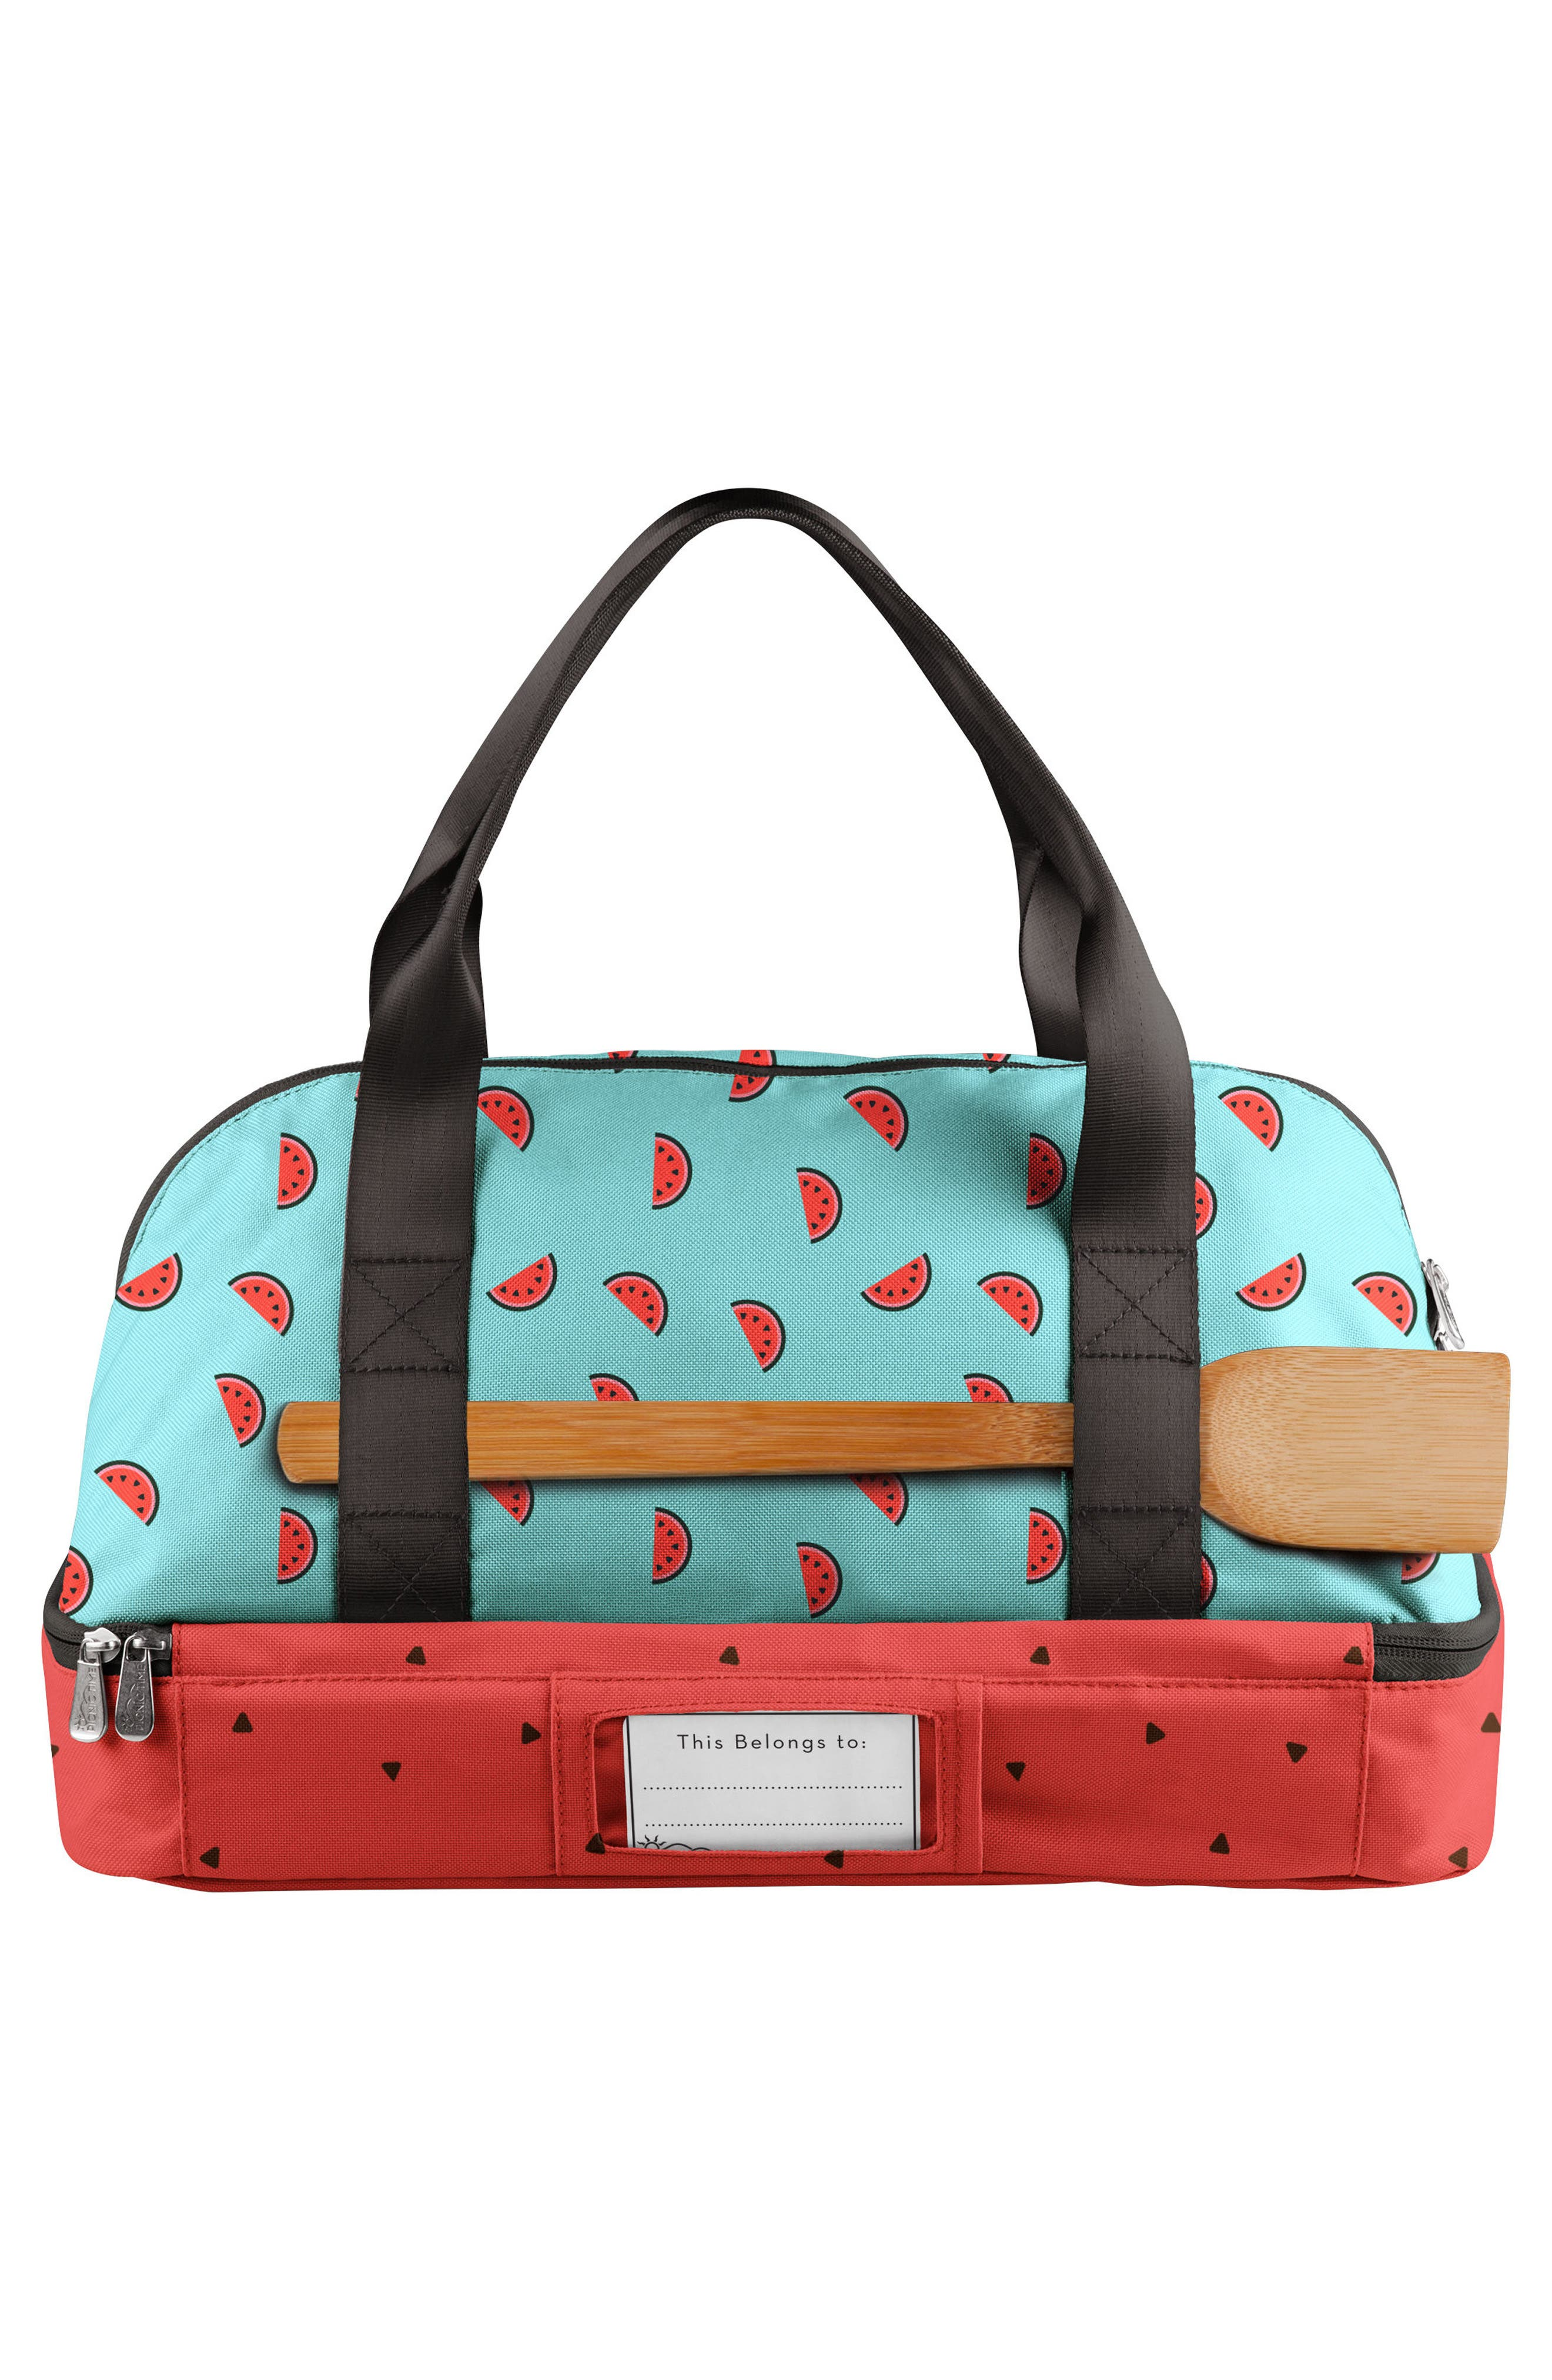 'Potluck' Casserole Tote,                             Alternate thumbnail 3, color,                             BLUE WATERMELON